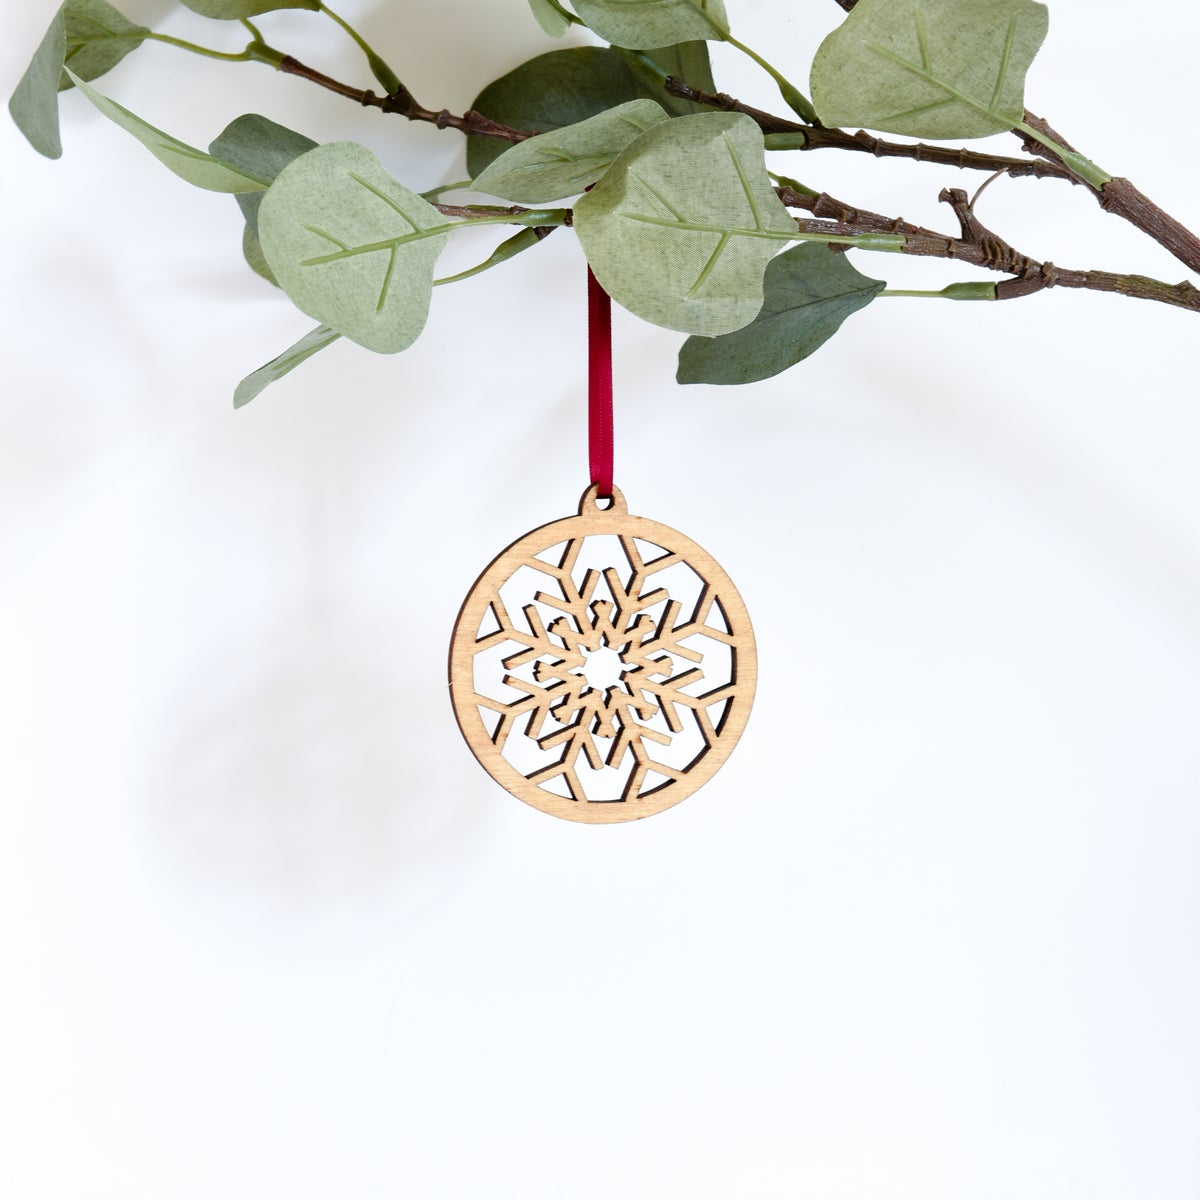 Image of Wooden Christmas Decorations - Snowflake